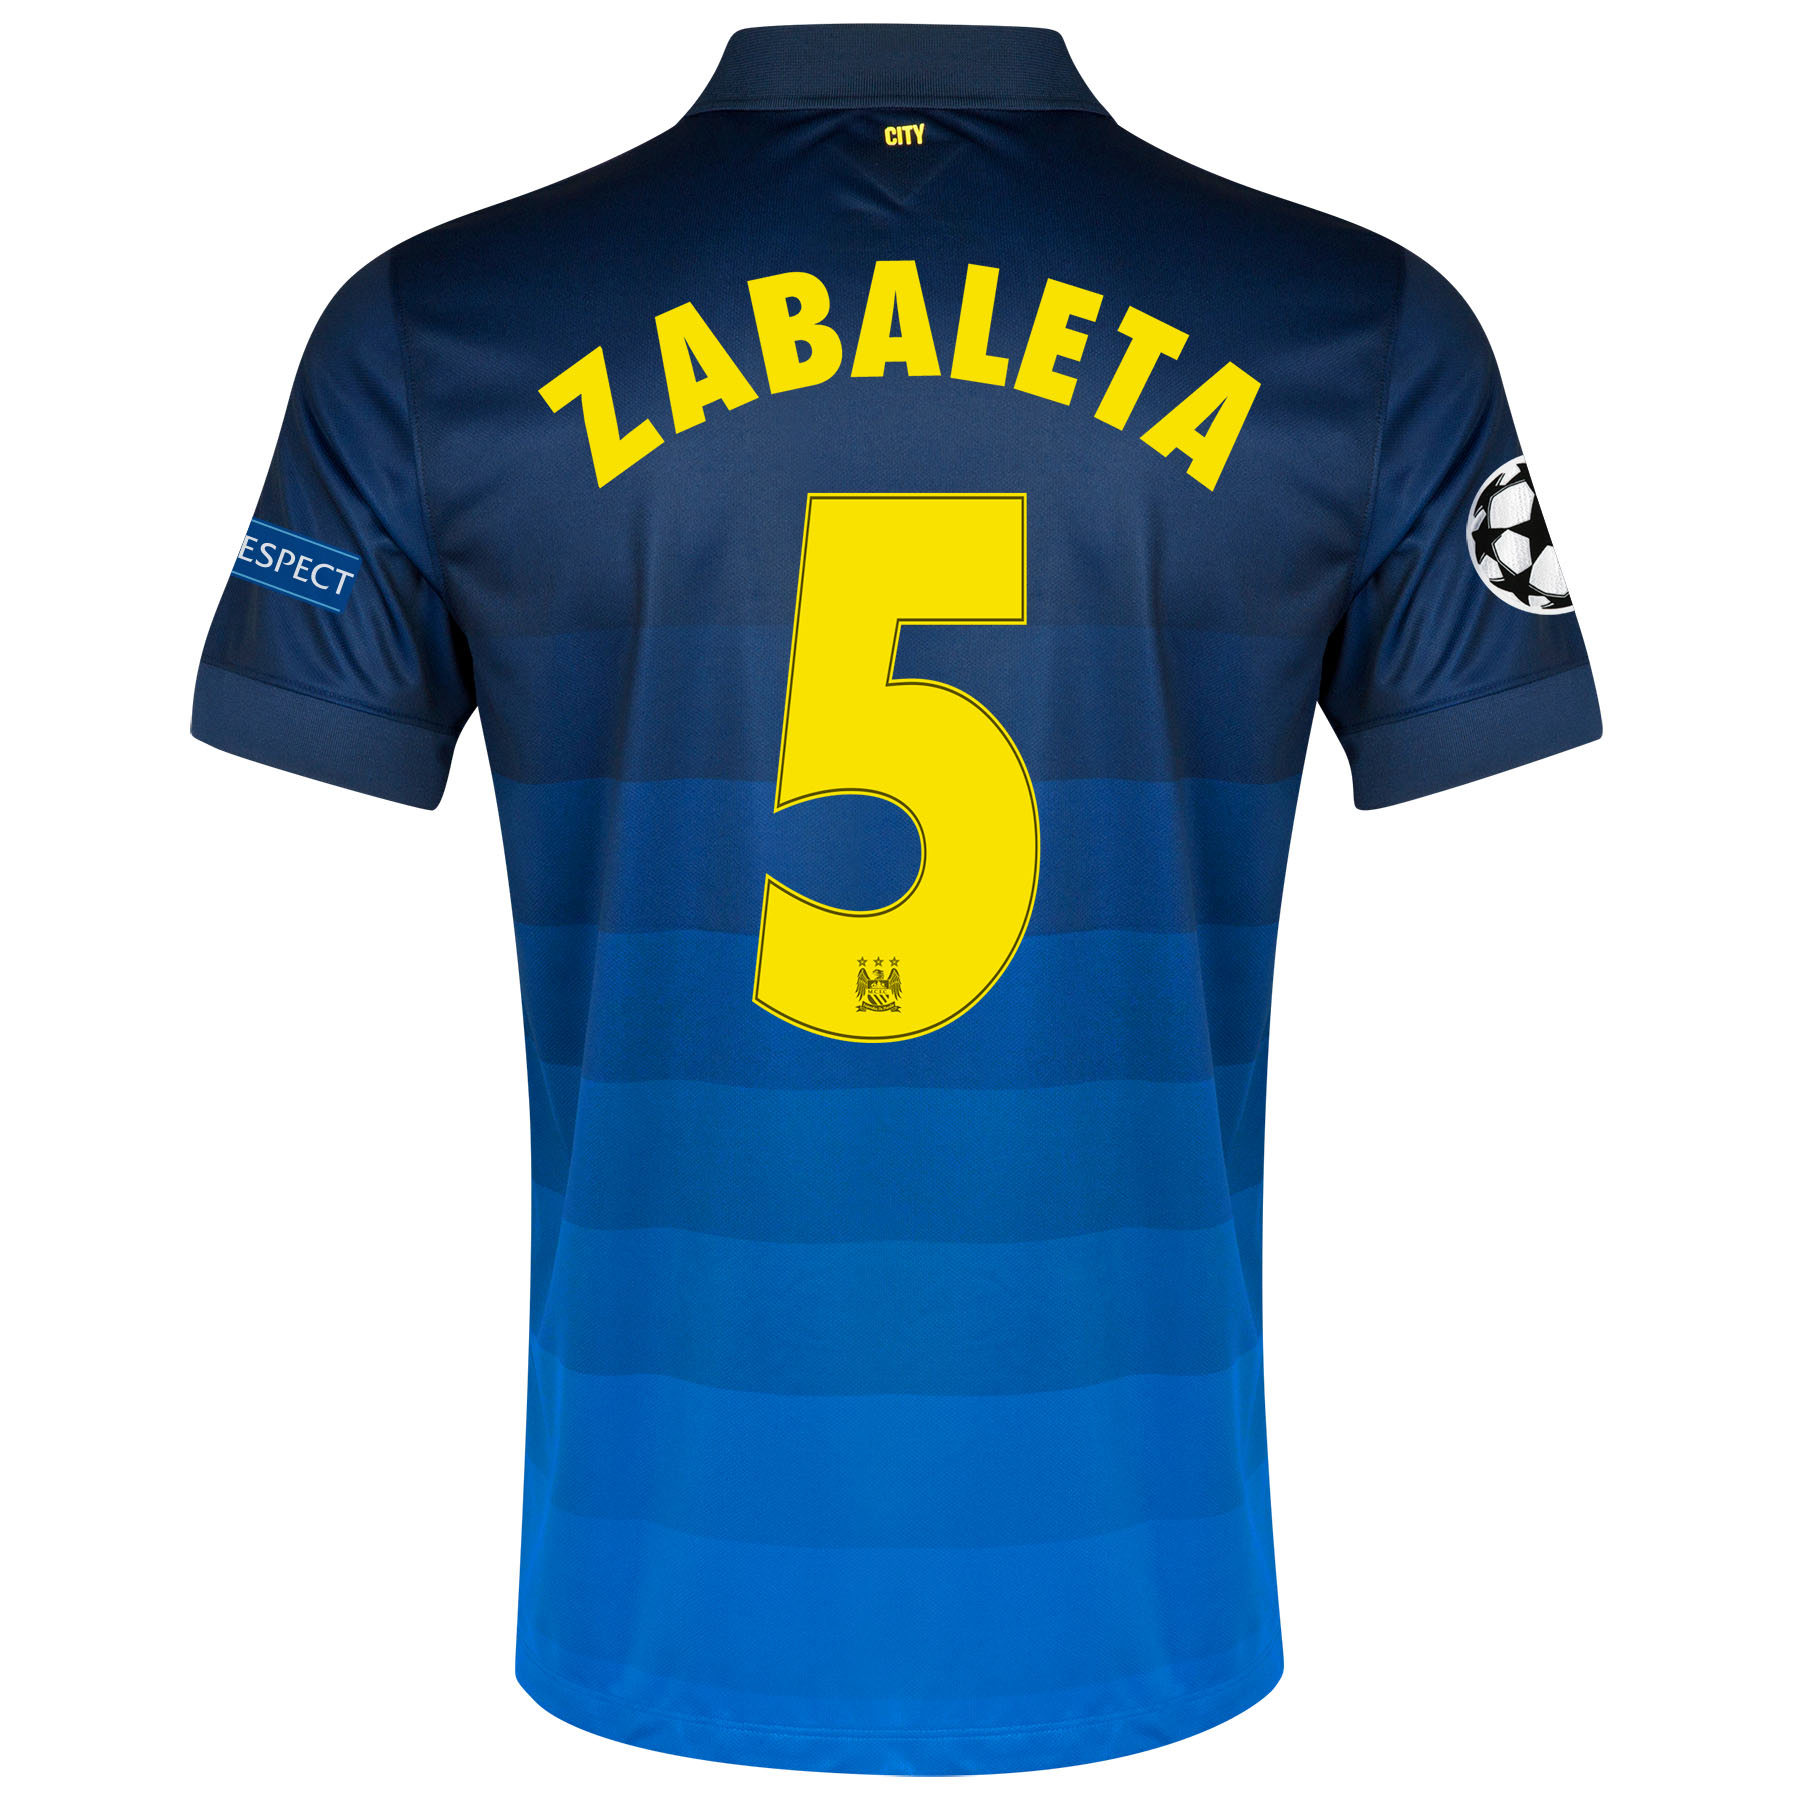 Manchester City UEFA Champions League Away Shirt 2014/15 with Zabaleta 5 printing